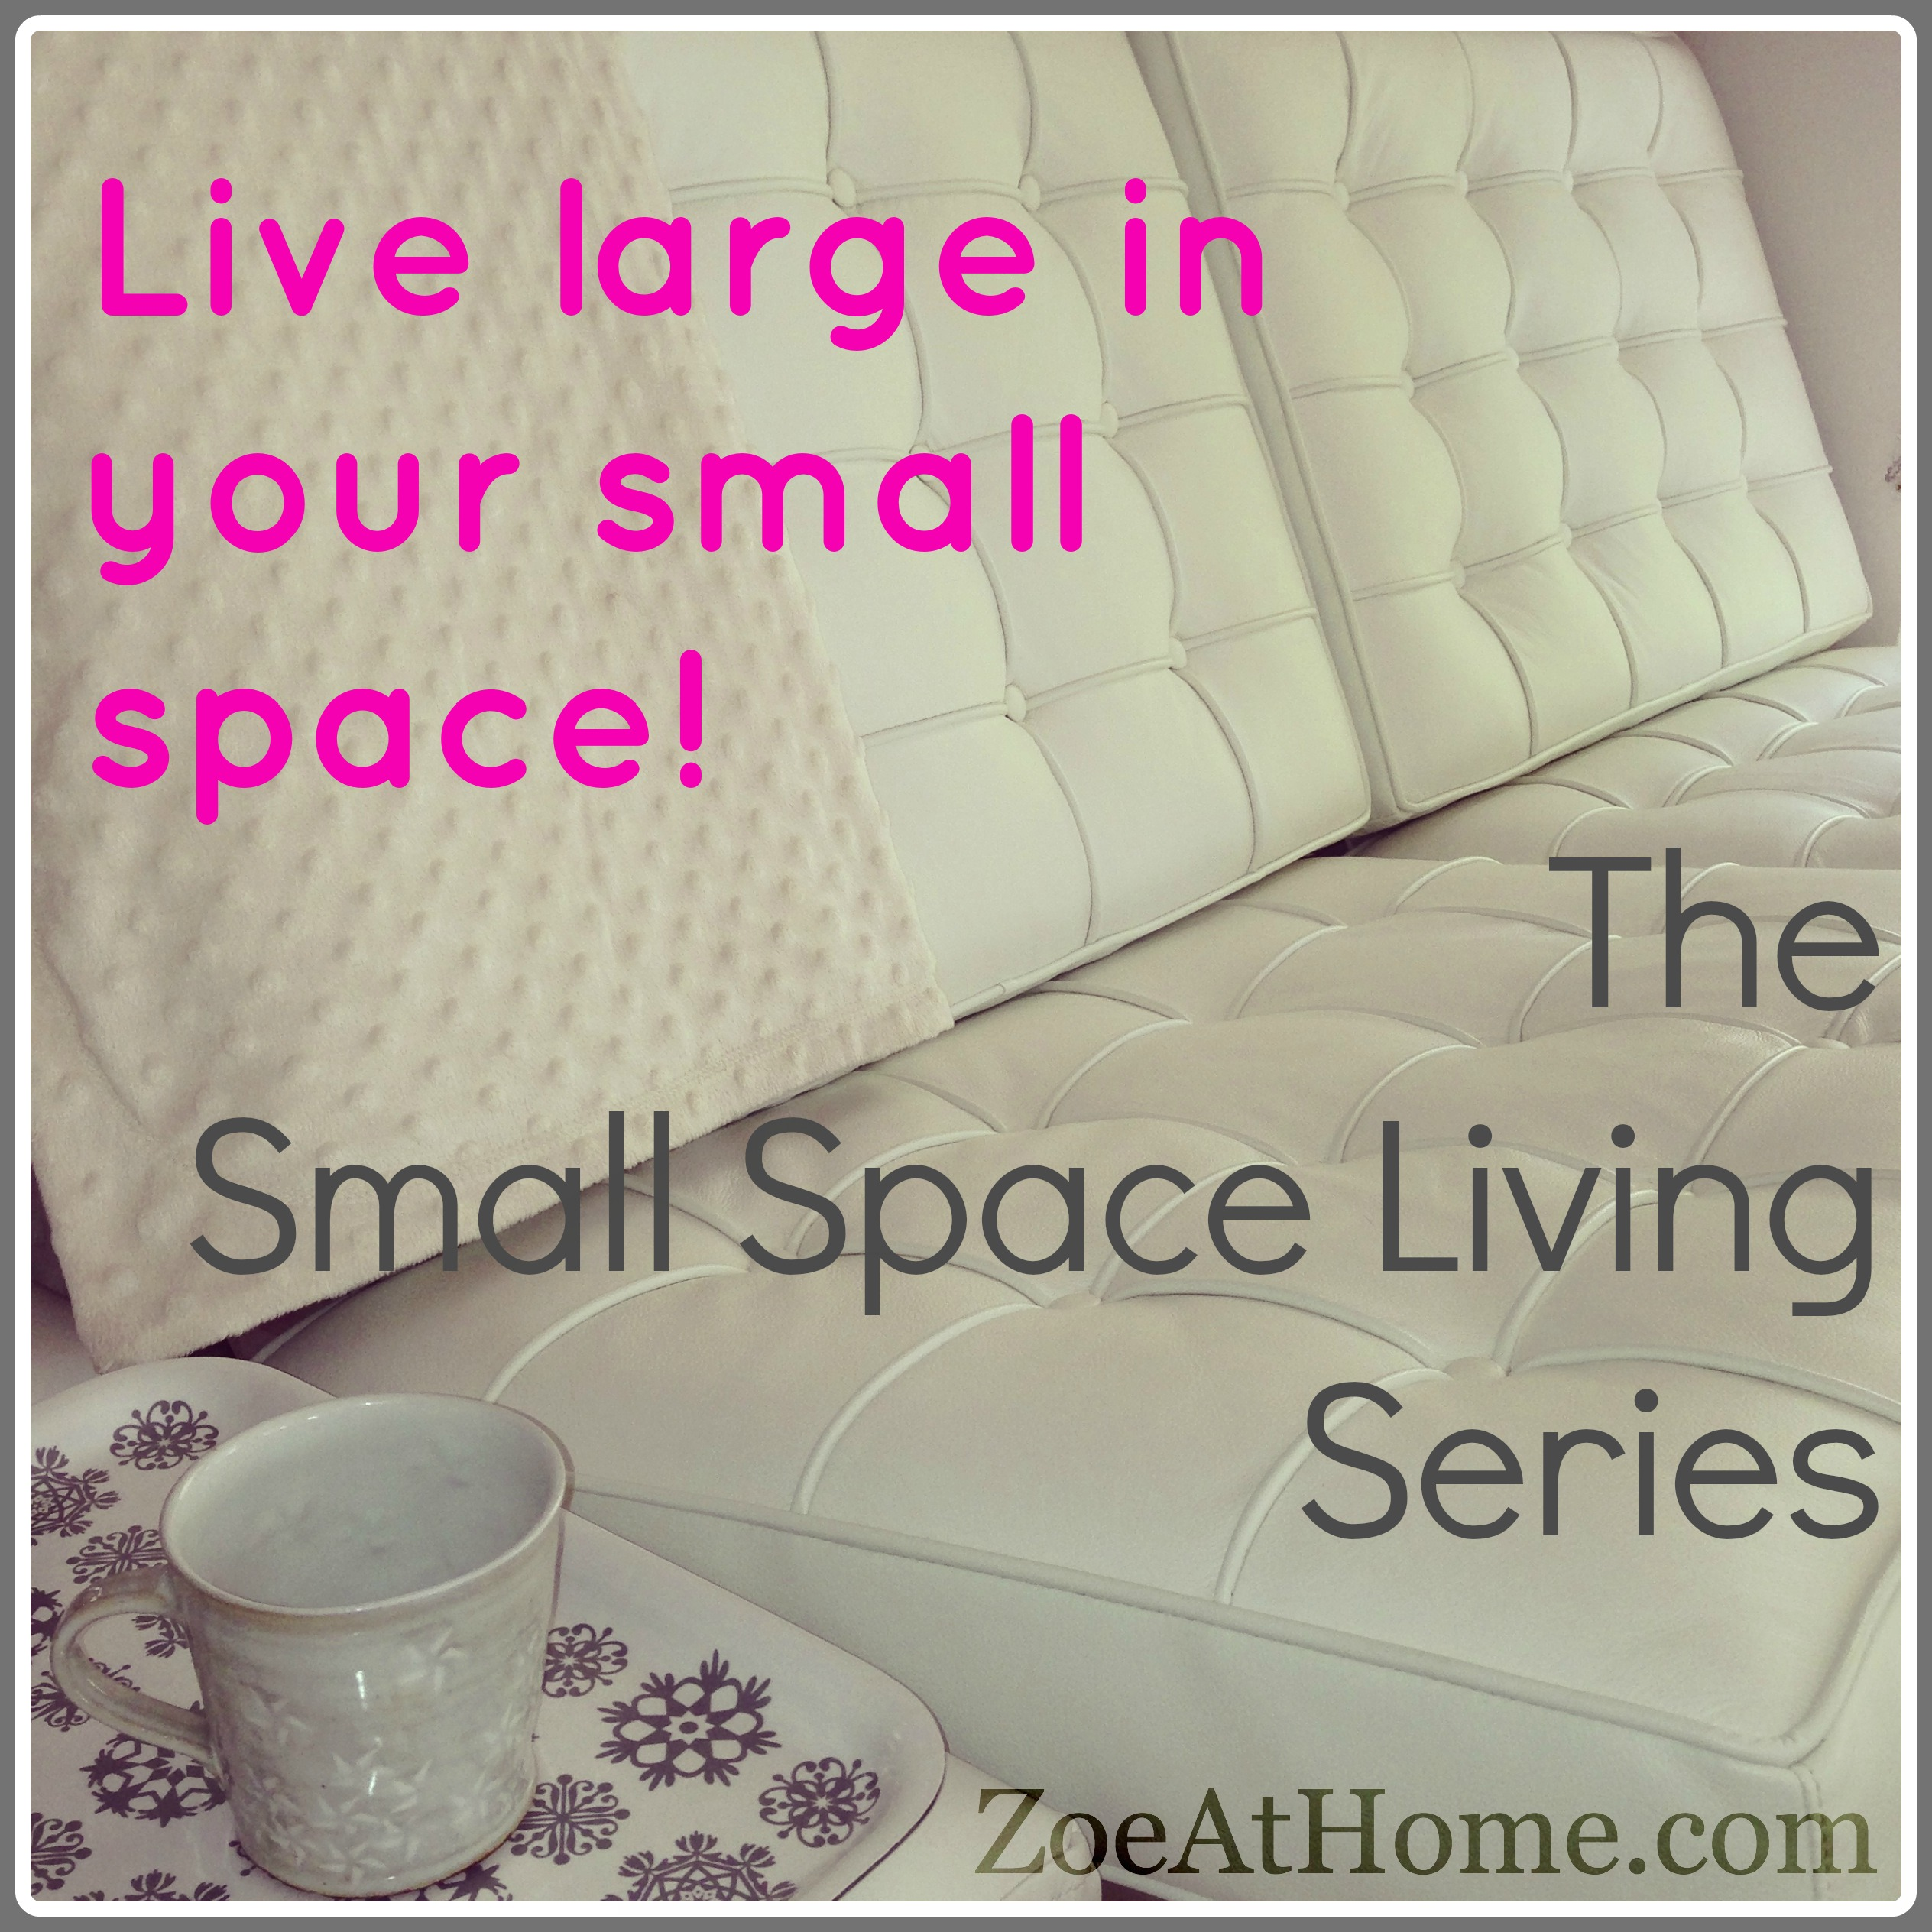 small space living « ZoeAtHome.